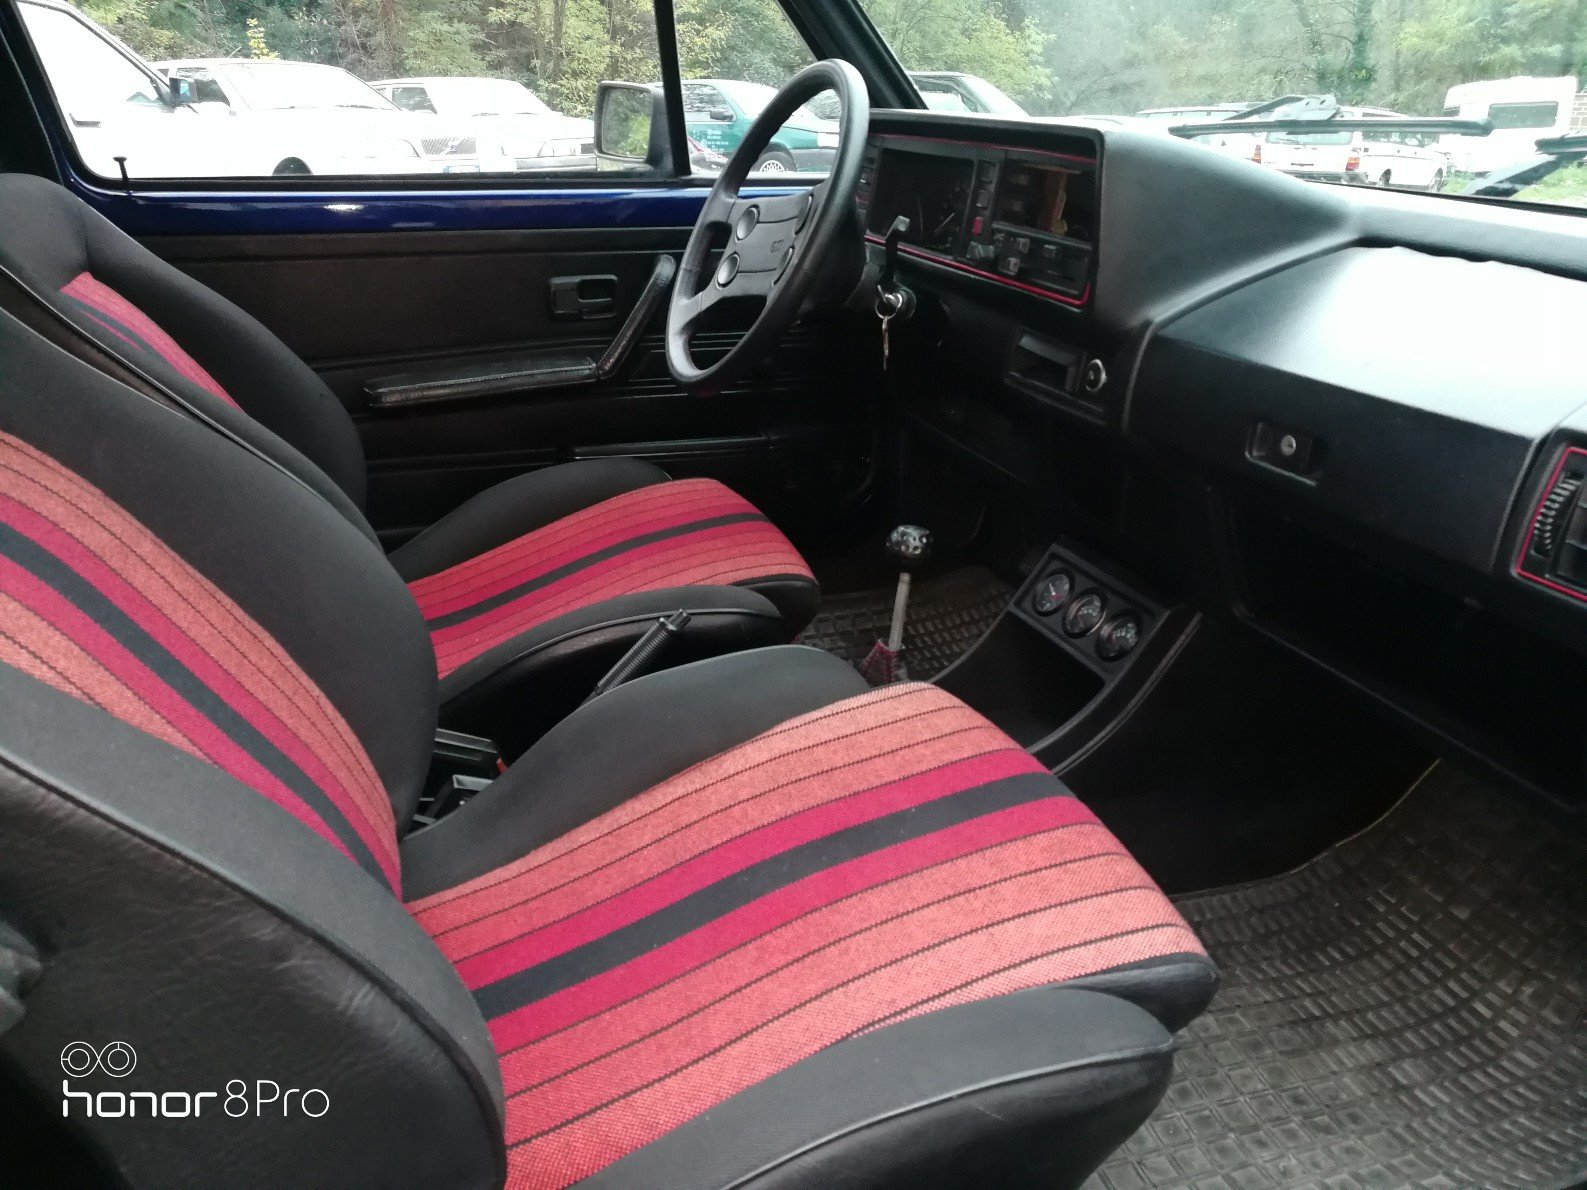 1983 Vw Golf 1.8 Gti mk1 For Sale (picture 4 of 6)